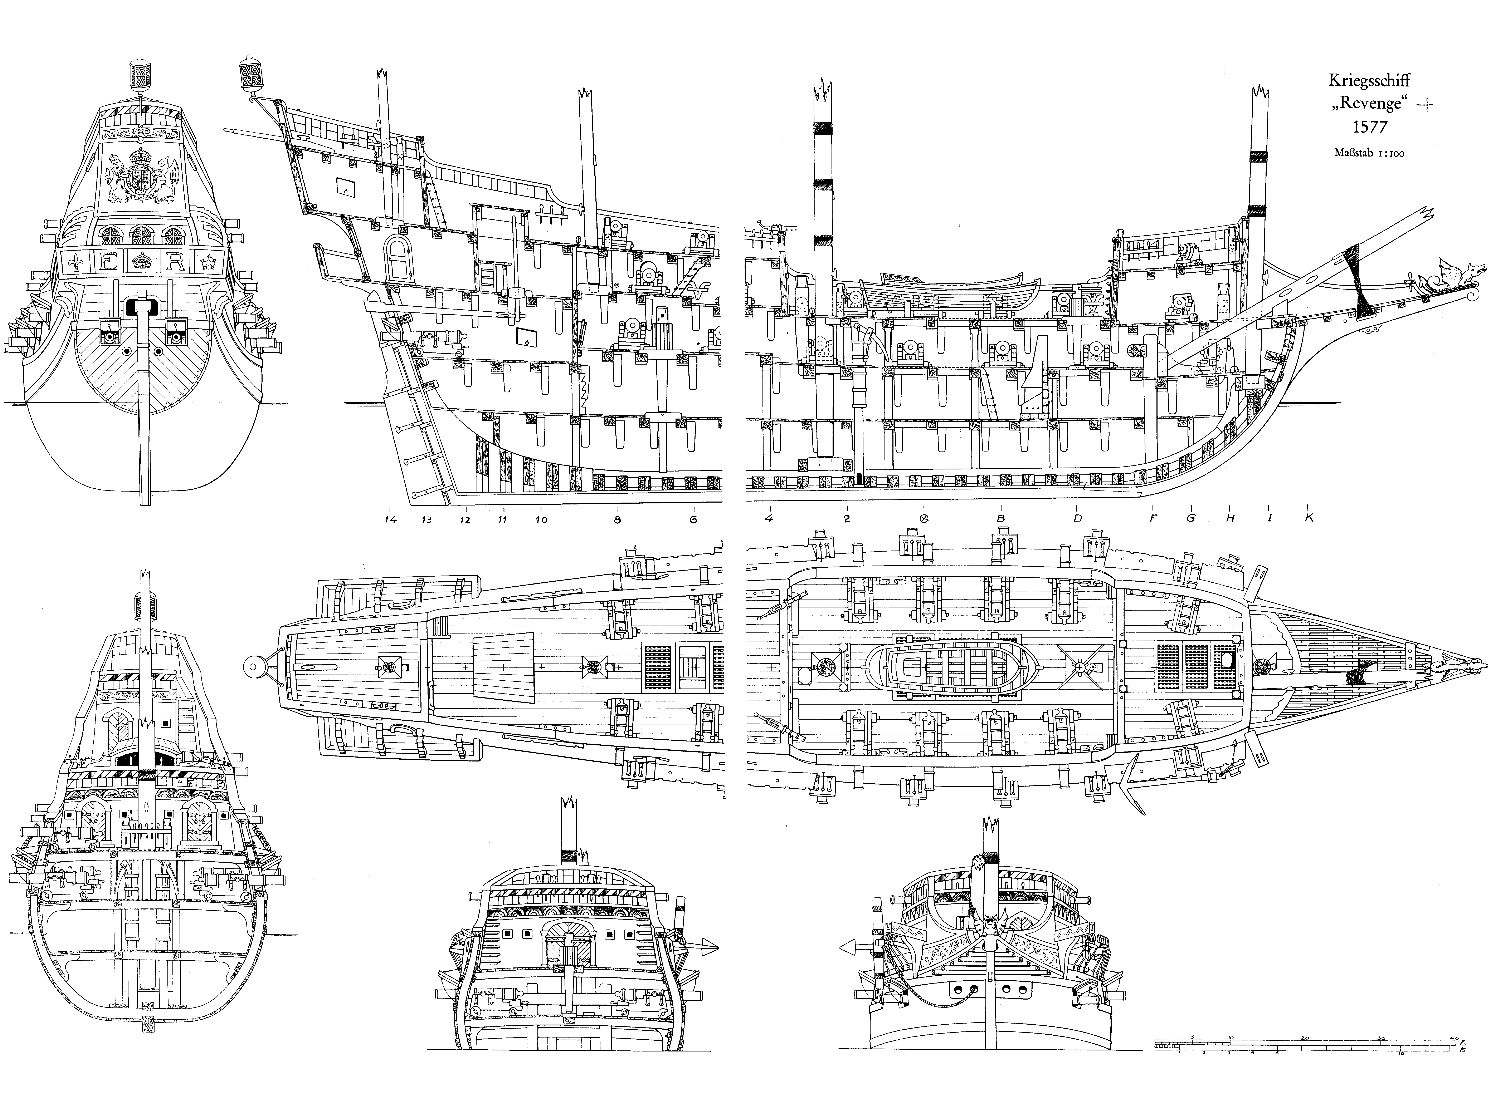 Ships Spaceship Schematics - DIY Enthusiasts Wiring Diagrams • on spaceship graphics, spaceship technology, spaceship ideas, spaceship symbols, spaceship maps, spaceship designs, spaceship materials, spaceship diagrams,